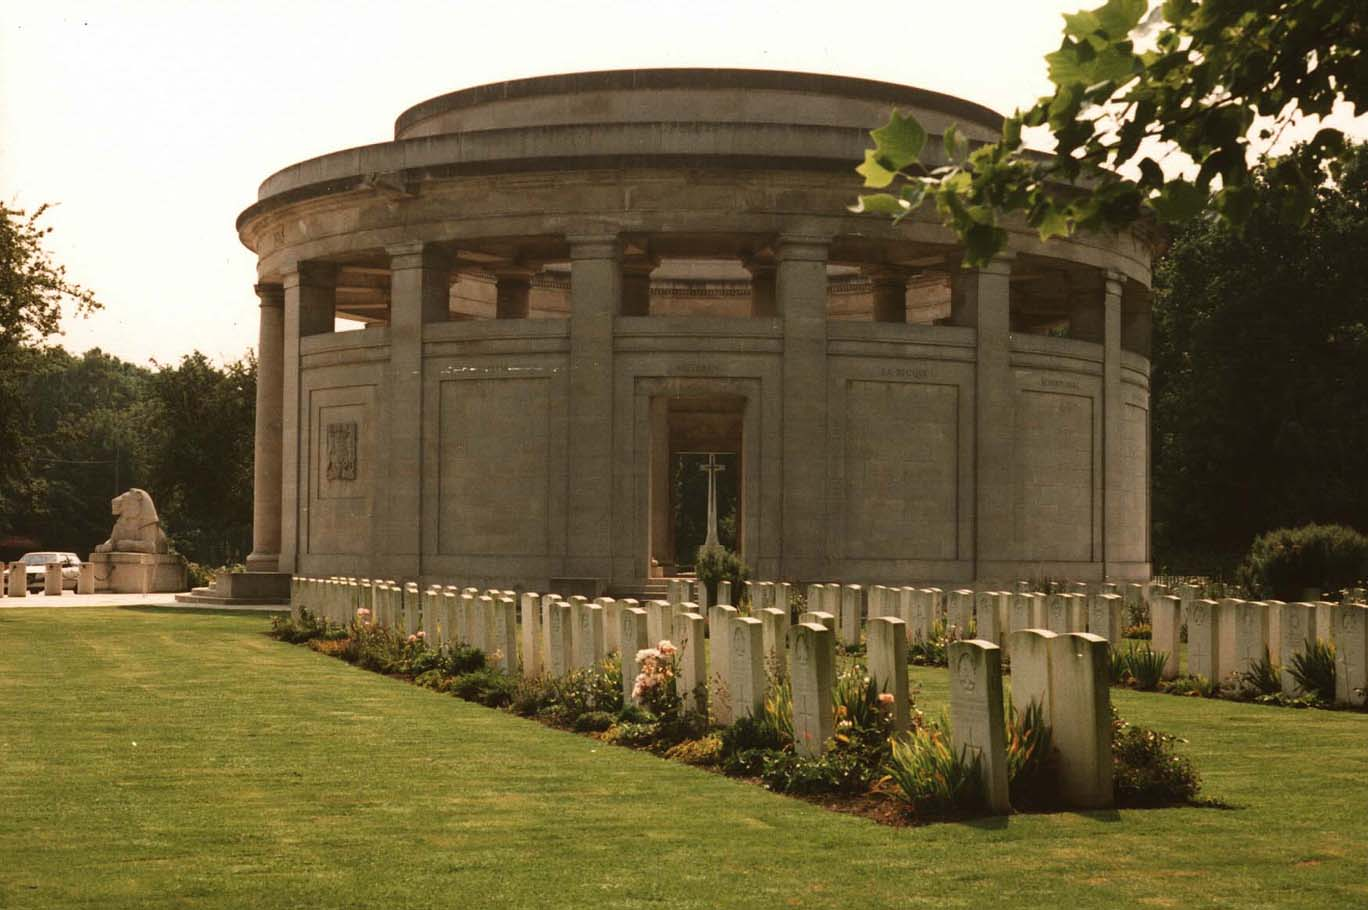 The Ploegsteert Memorial, Ieper, Belgium